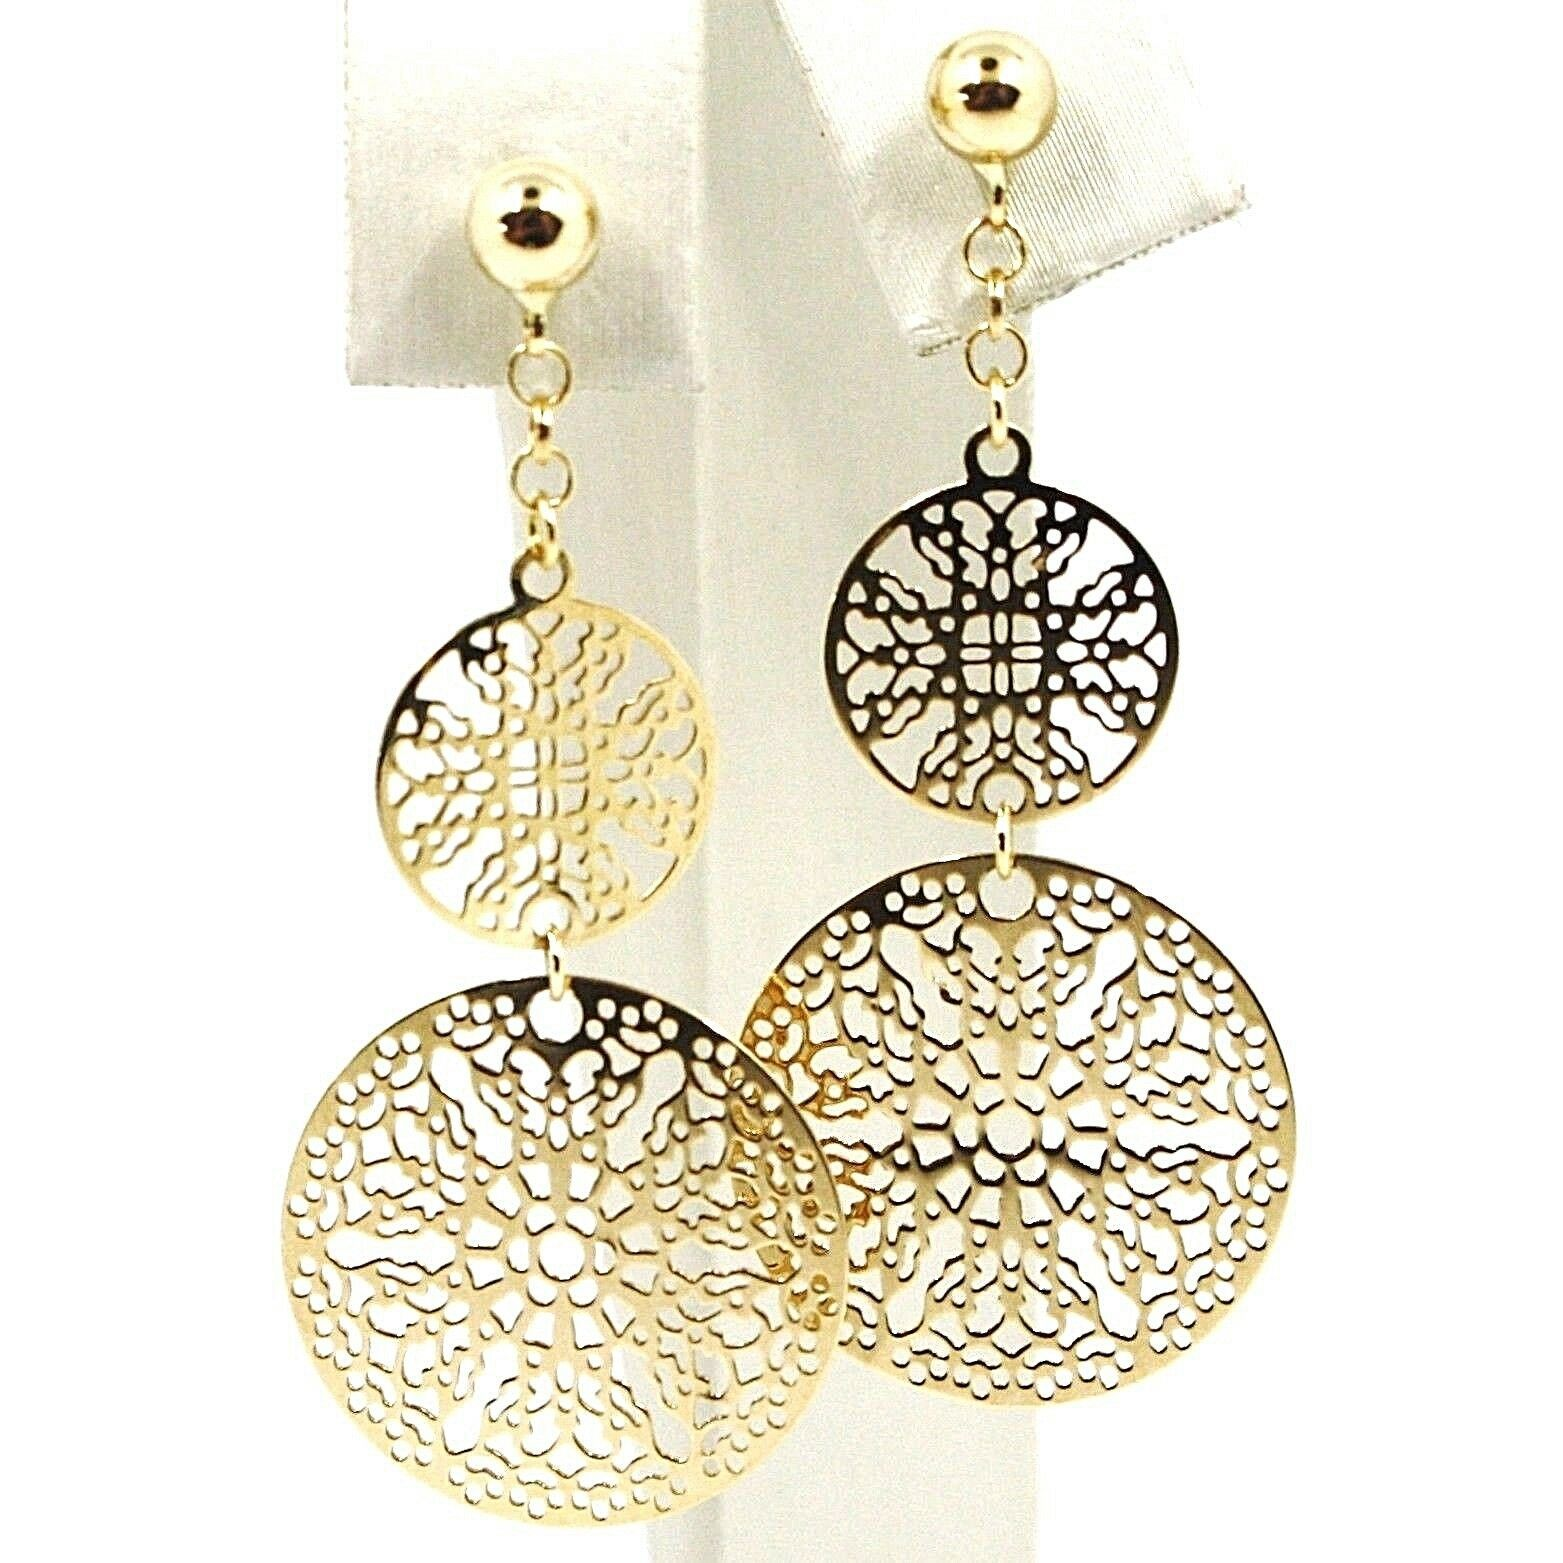 Drop Earrings Yellow Gold 750 18k, 2 Discs Cut-Out, Pattern Floral